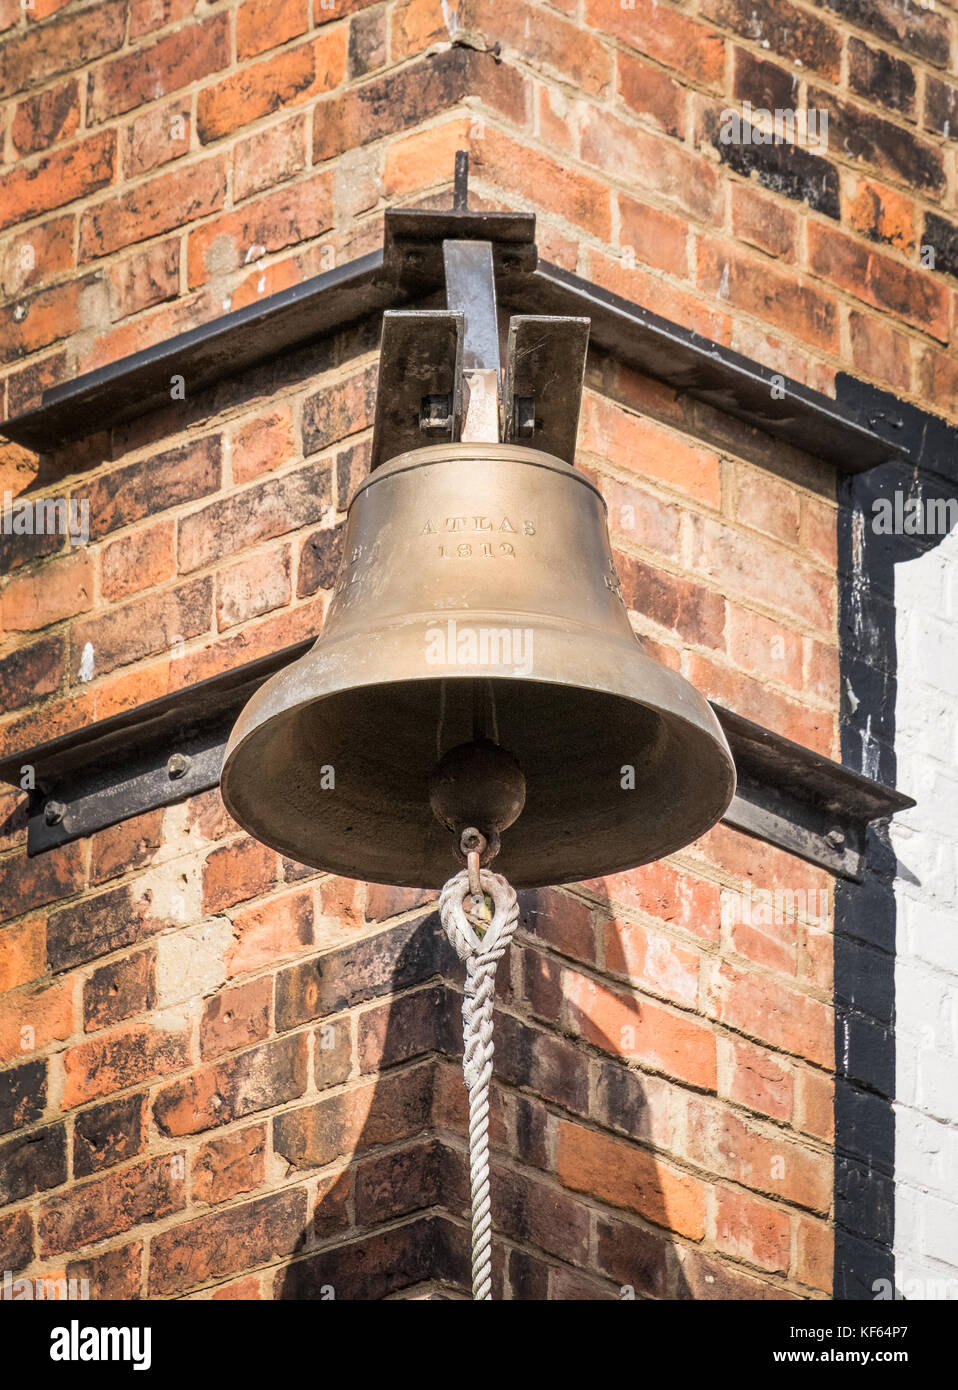 The Atlas Bell, Gloucester Docks. The bell of the Atlas ship, launched in 1812. Later in 1832 it signalled the dockers - Stock Image